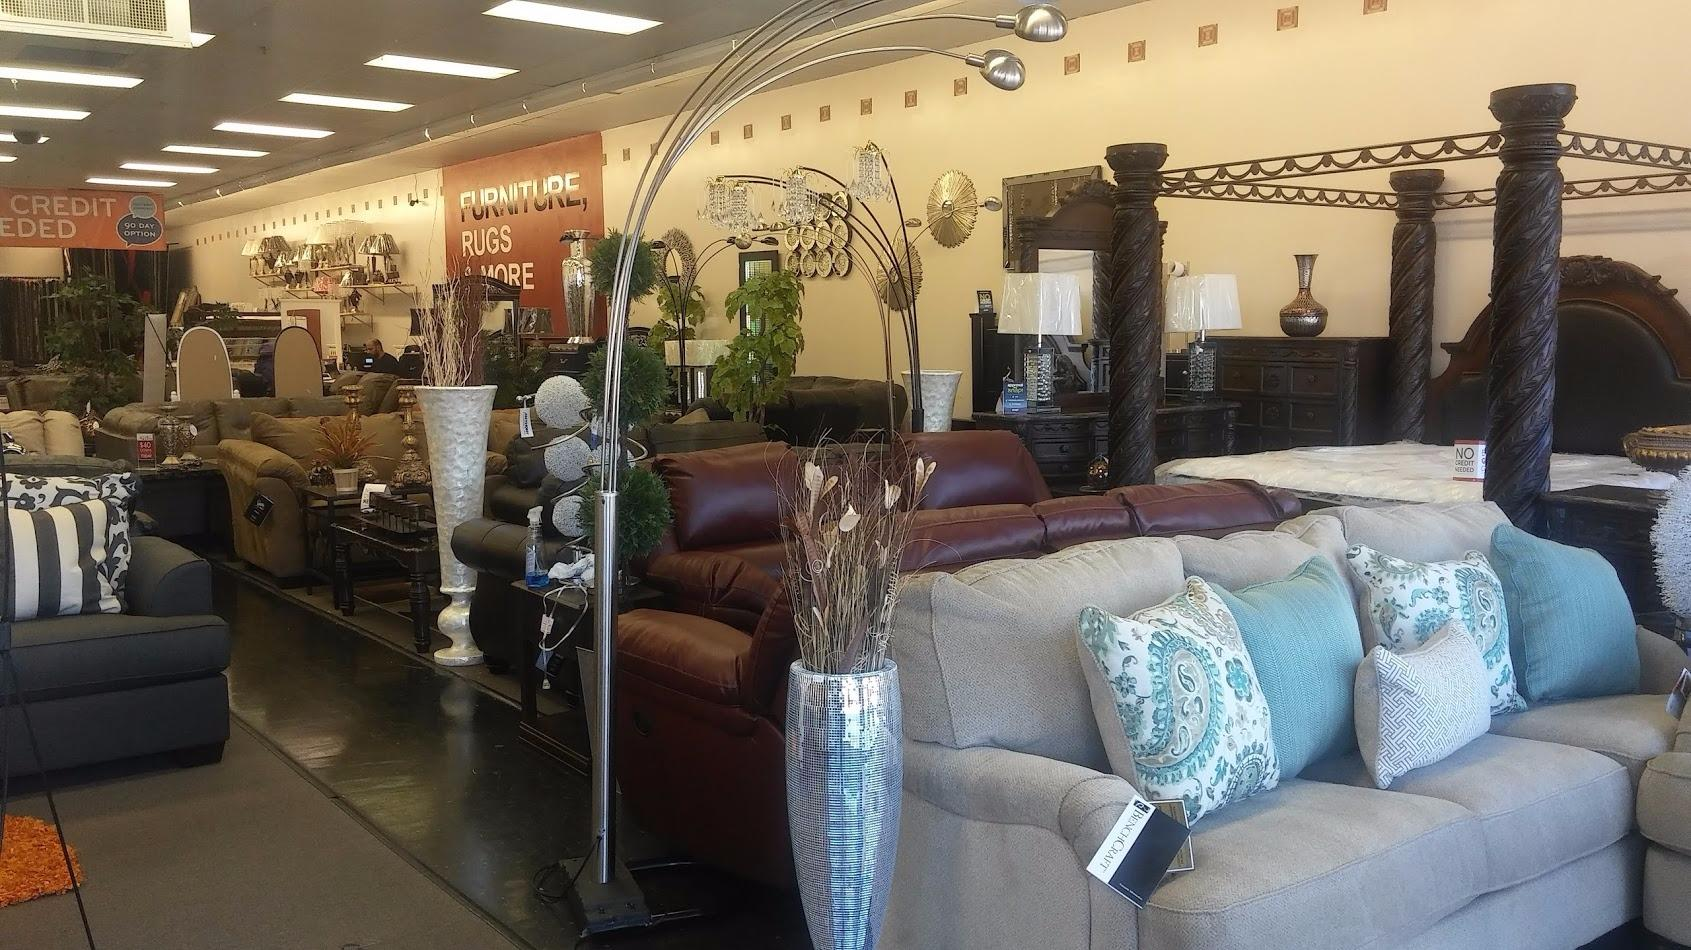 Furniture Rugs & More in Atlanta GA